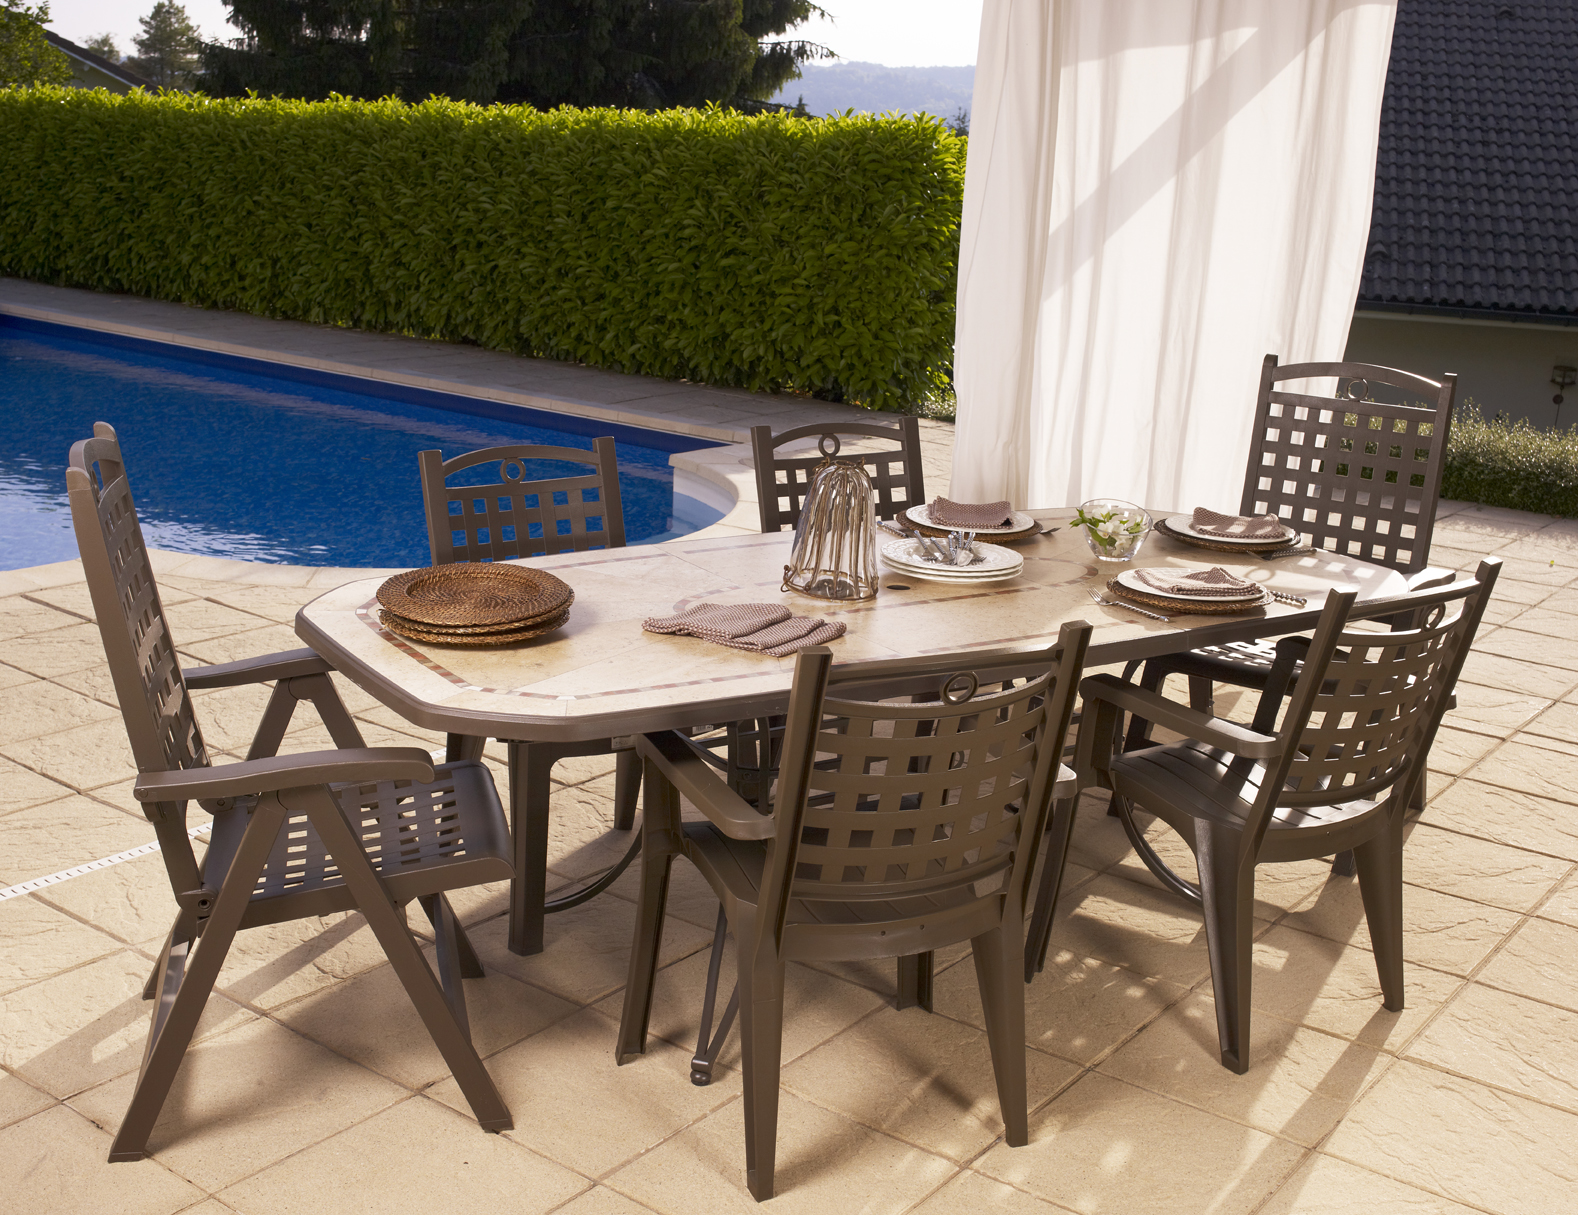 Grosfillex salon complet table amalfi bronze 4 fauteuils bo - Table jardin grofilex besancon ...